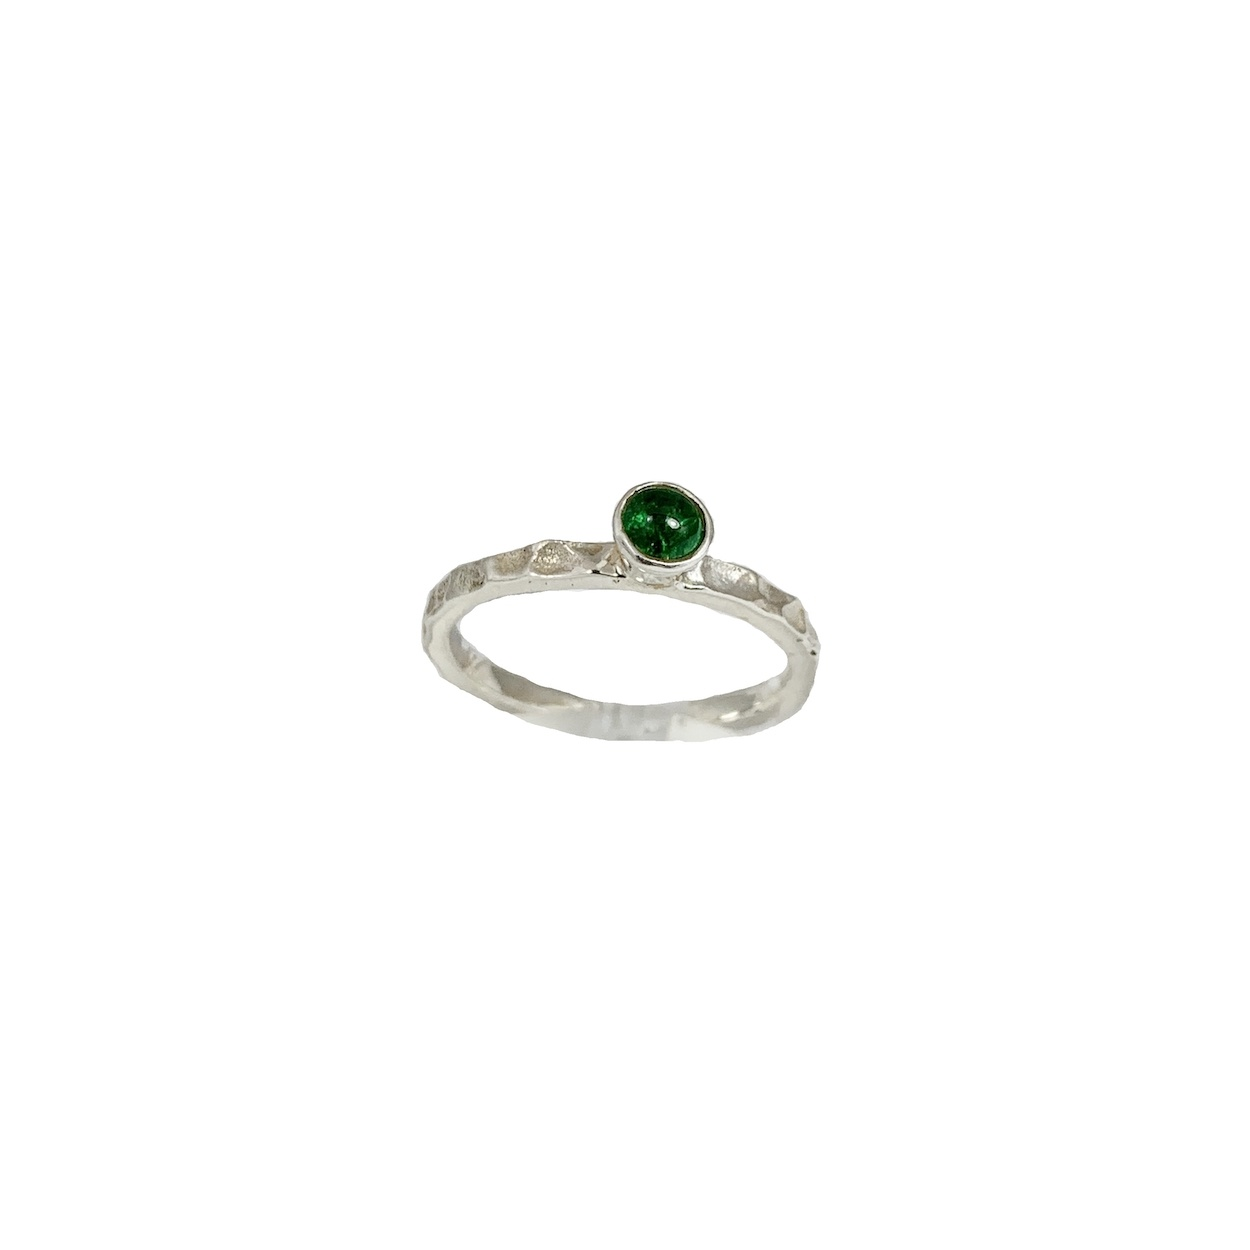 Kiliaan Jewelry Stackable rings Groen toermalijn